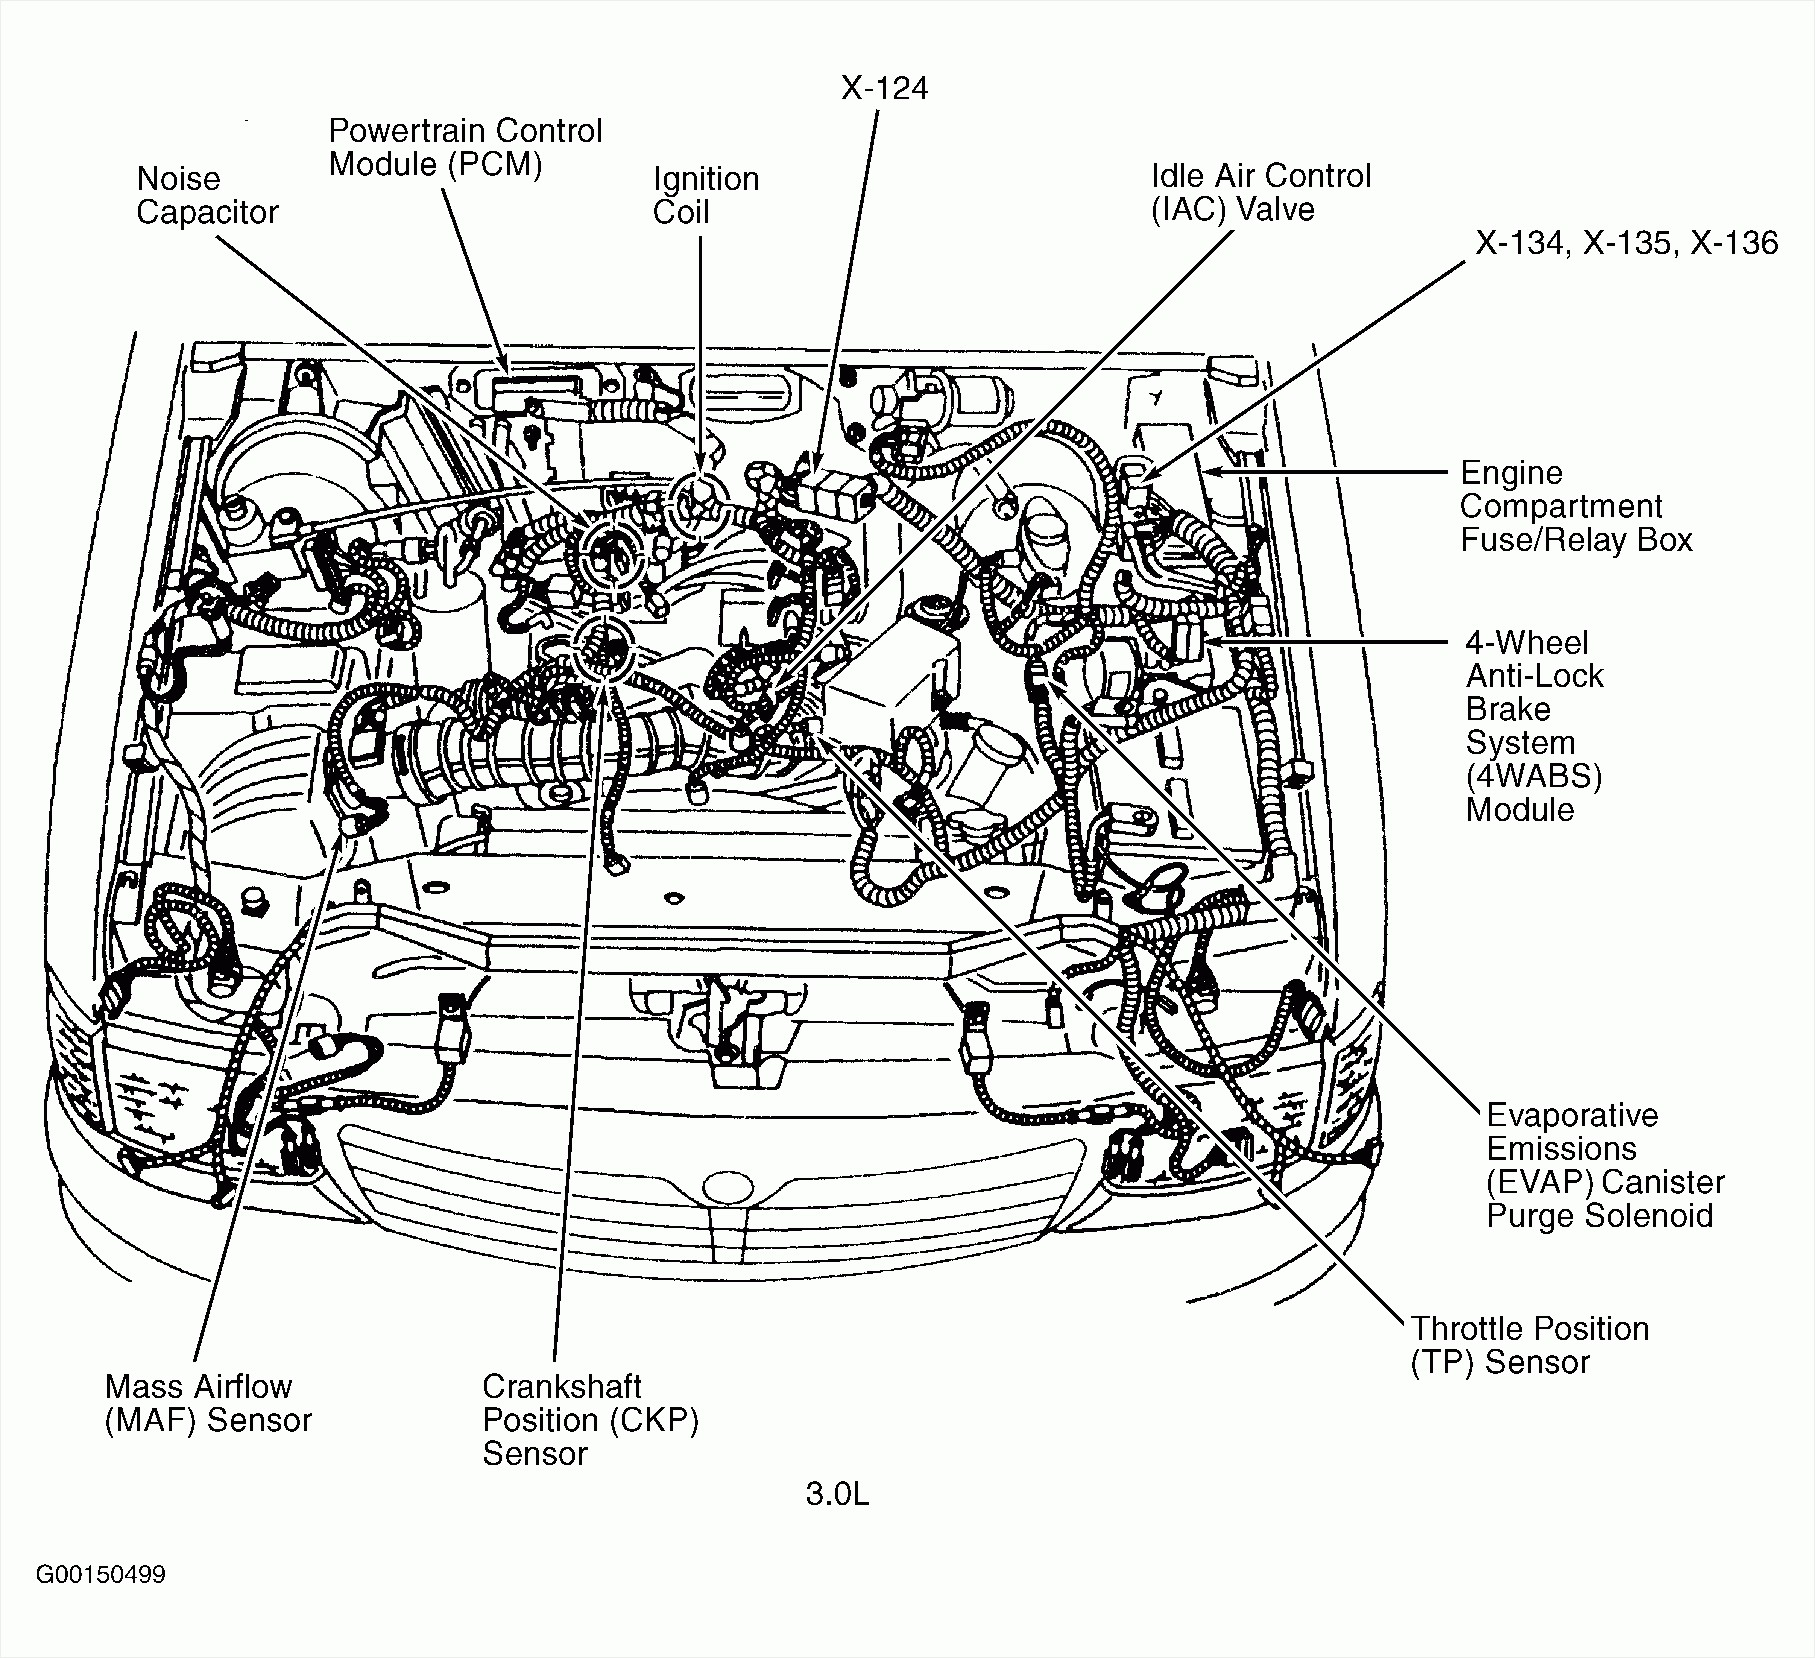 bmw engine bay diagram all wiring diagram 1998 BMW Z3 Engine Diagram